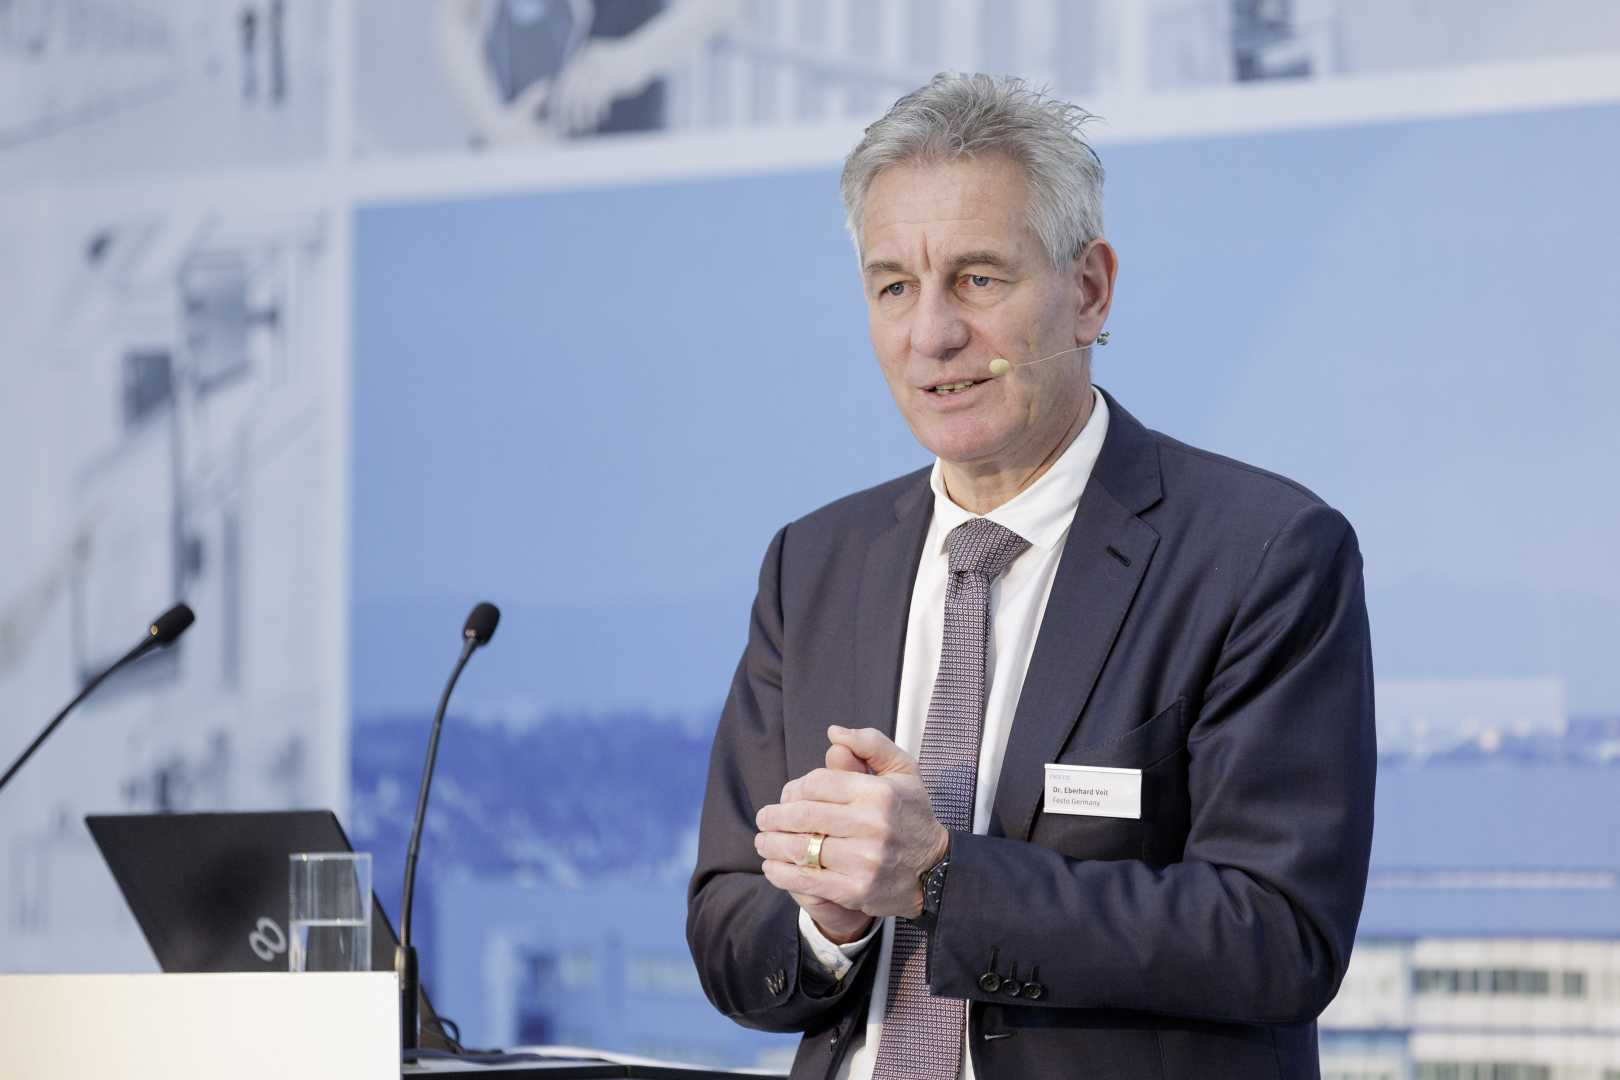 """Is Industry 4.0 a global challenge or a gateway to the future?"" asked Chairman of the management board of Festo AG & Co. KG, Dr Eberhard Veit."